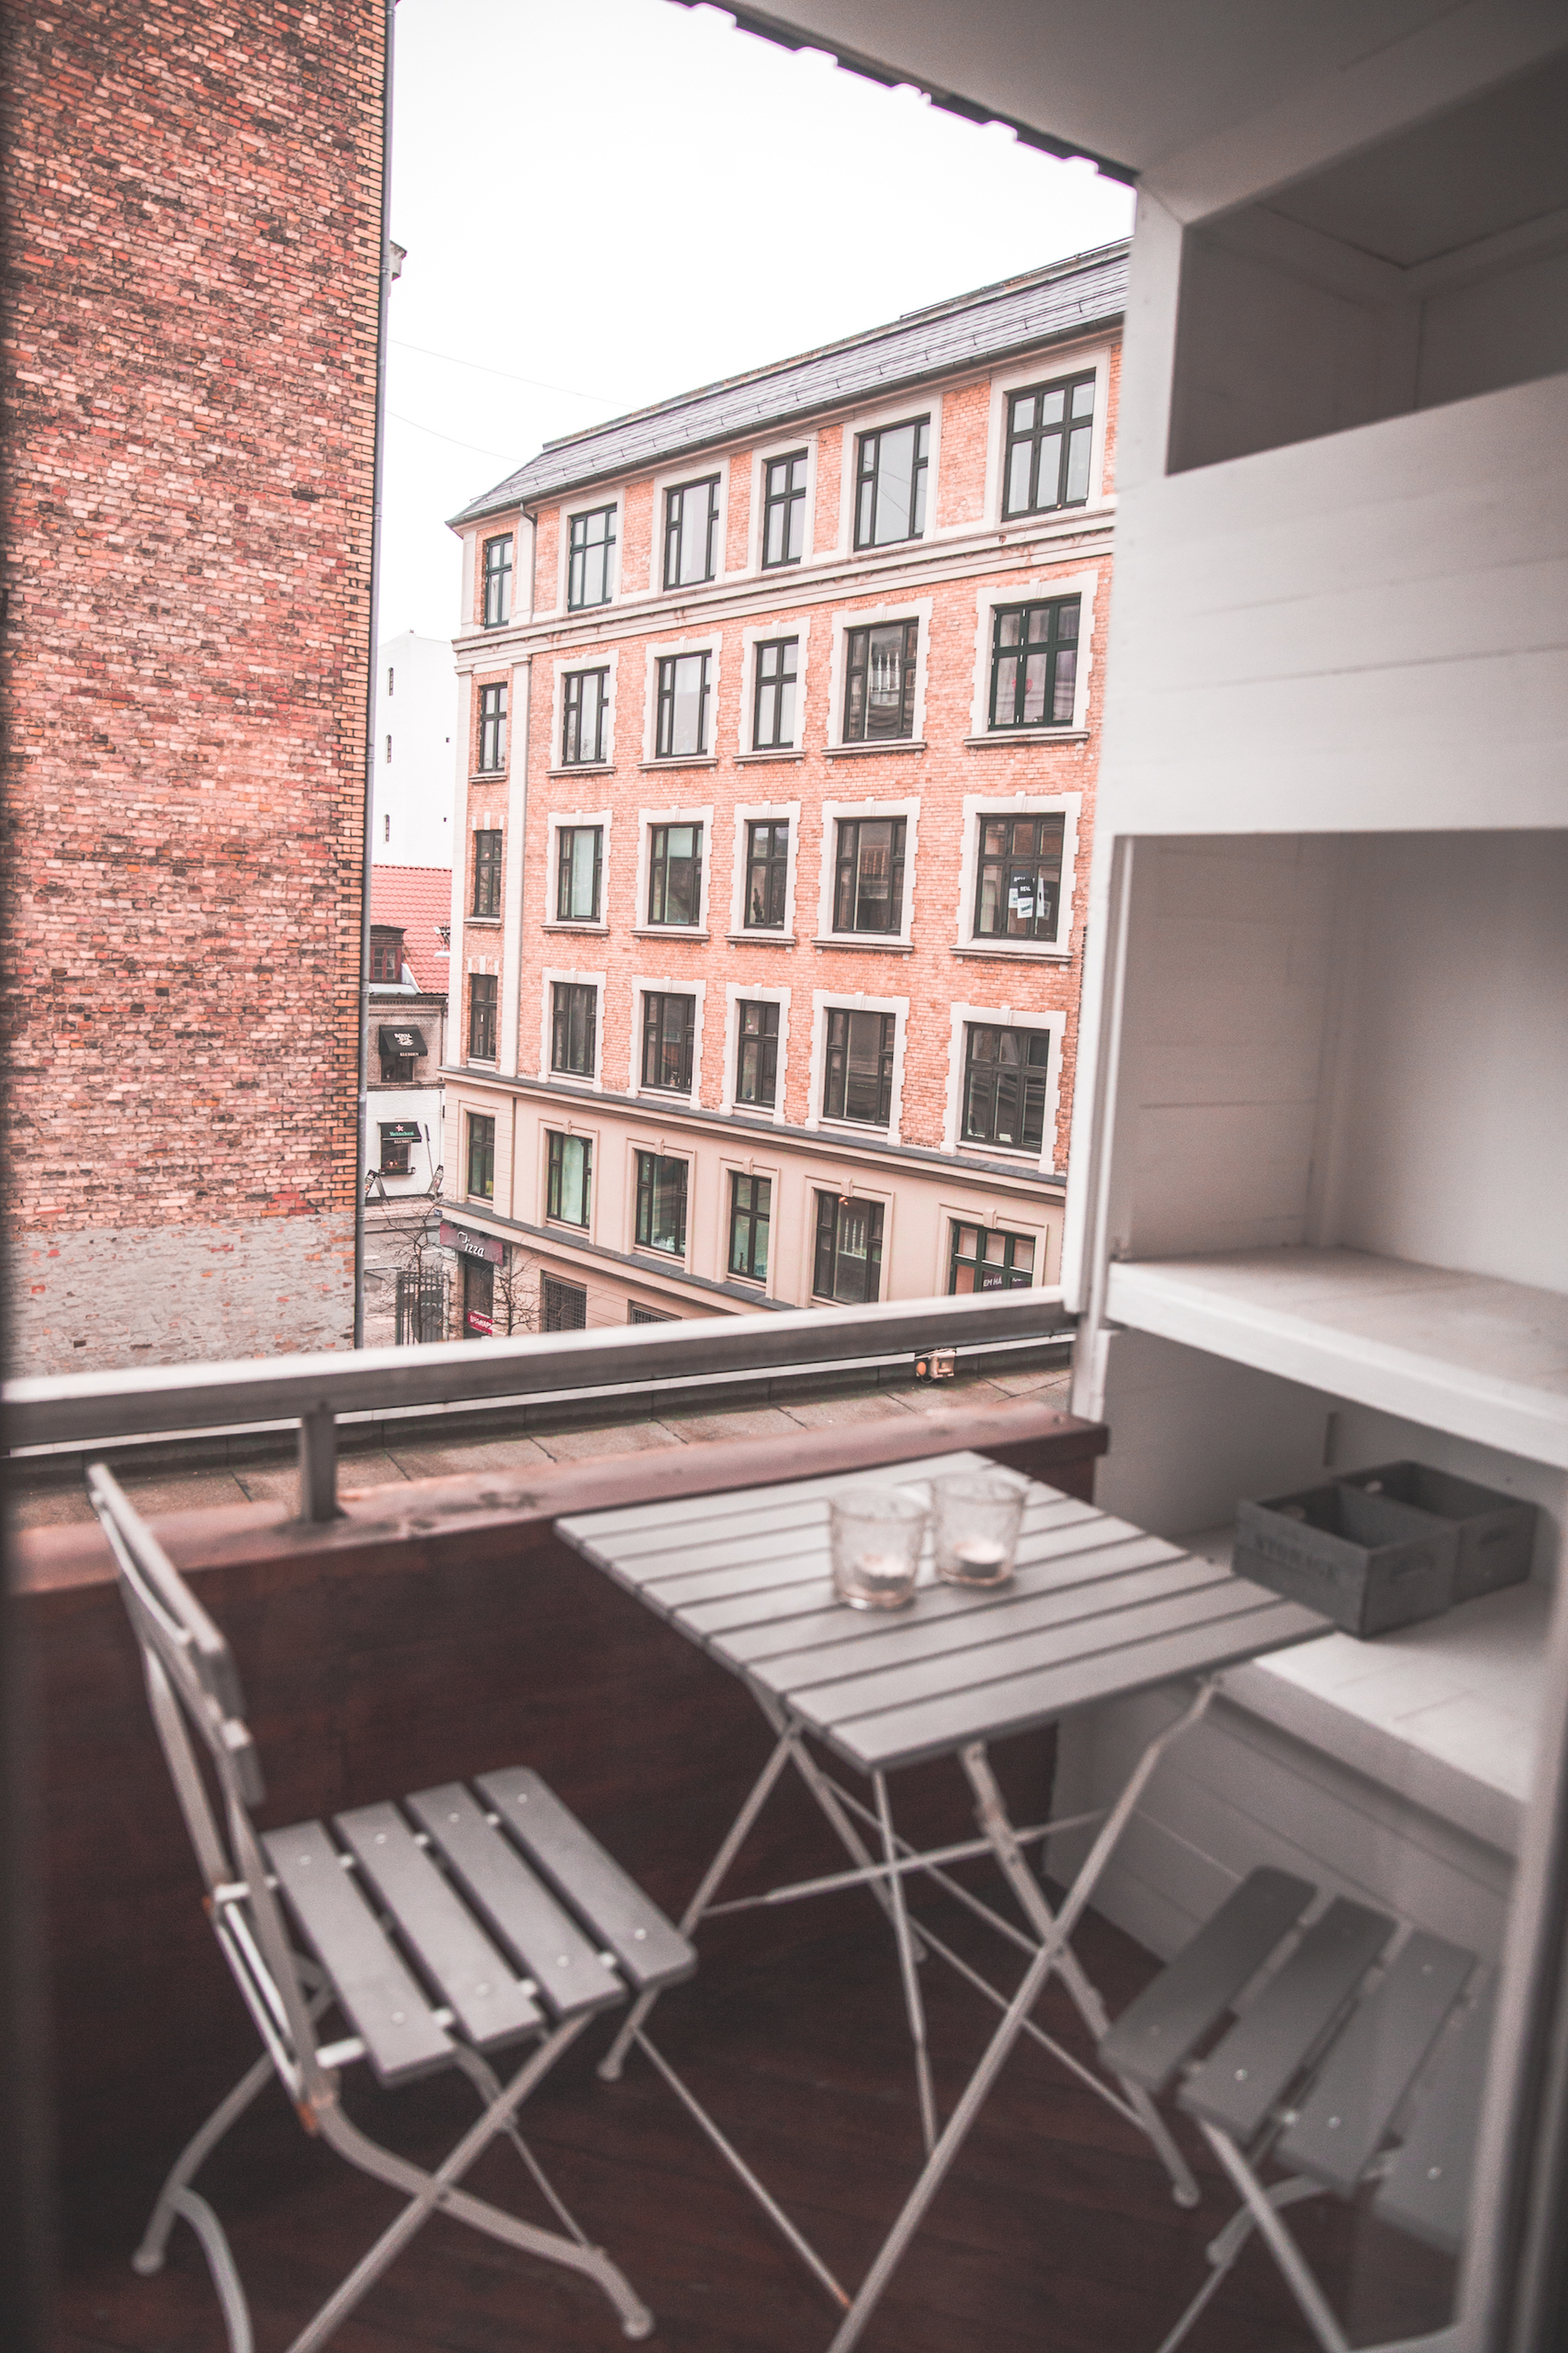 Copenhagen AirBnb Deck with chairs and a table and view of other buildings